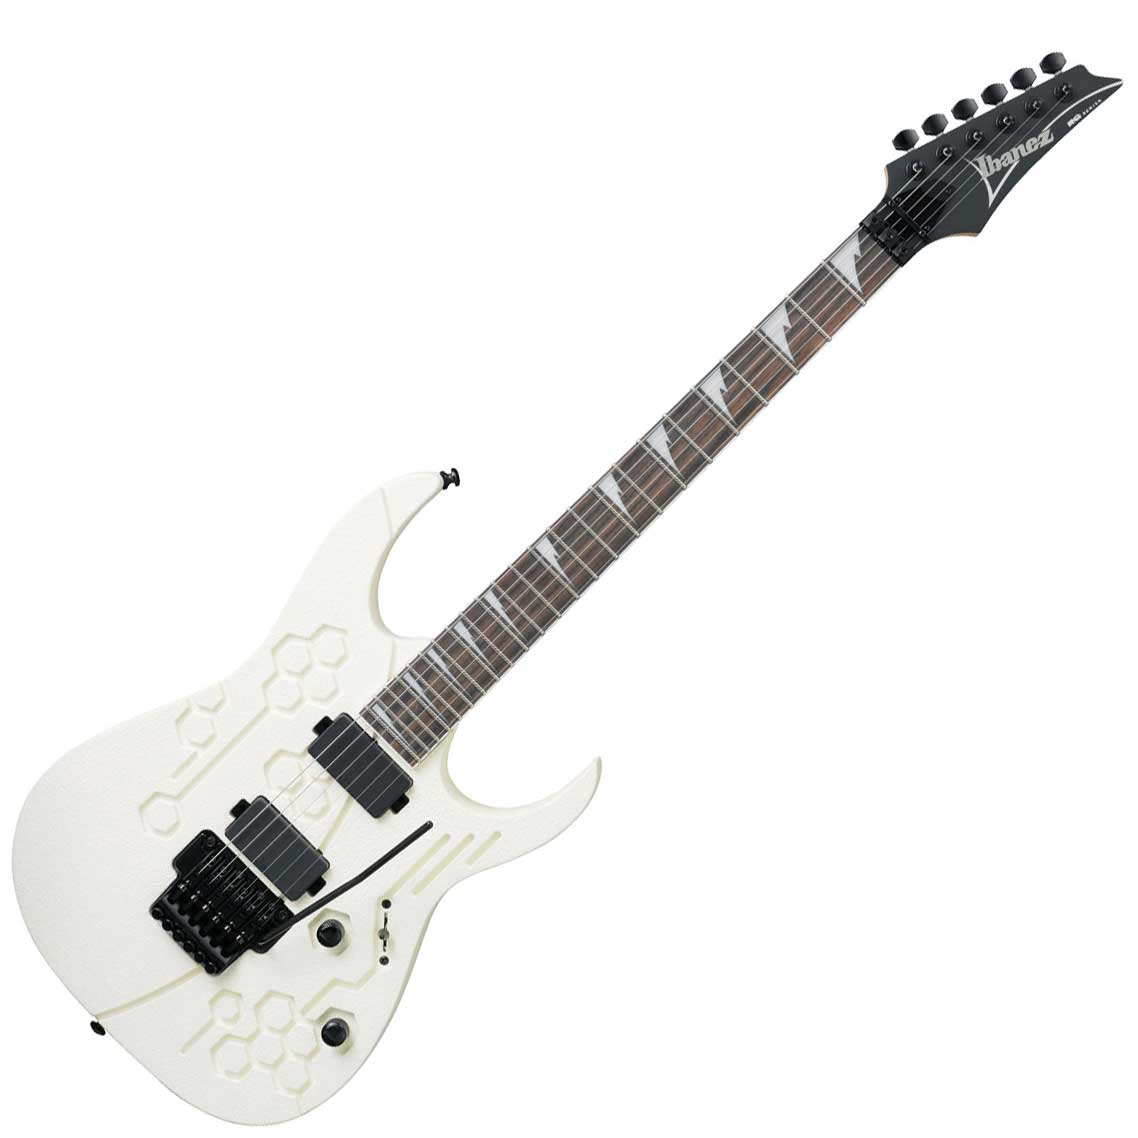 Ibanez Guitar 22091 Hd Wallpapers in Music   Imagescicom 1138x1138